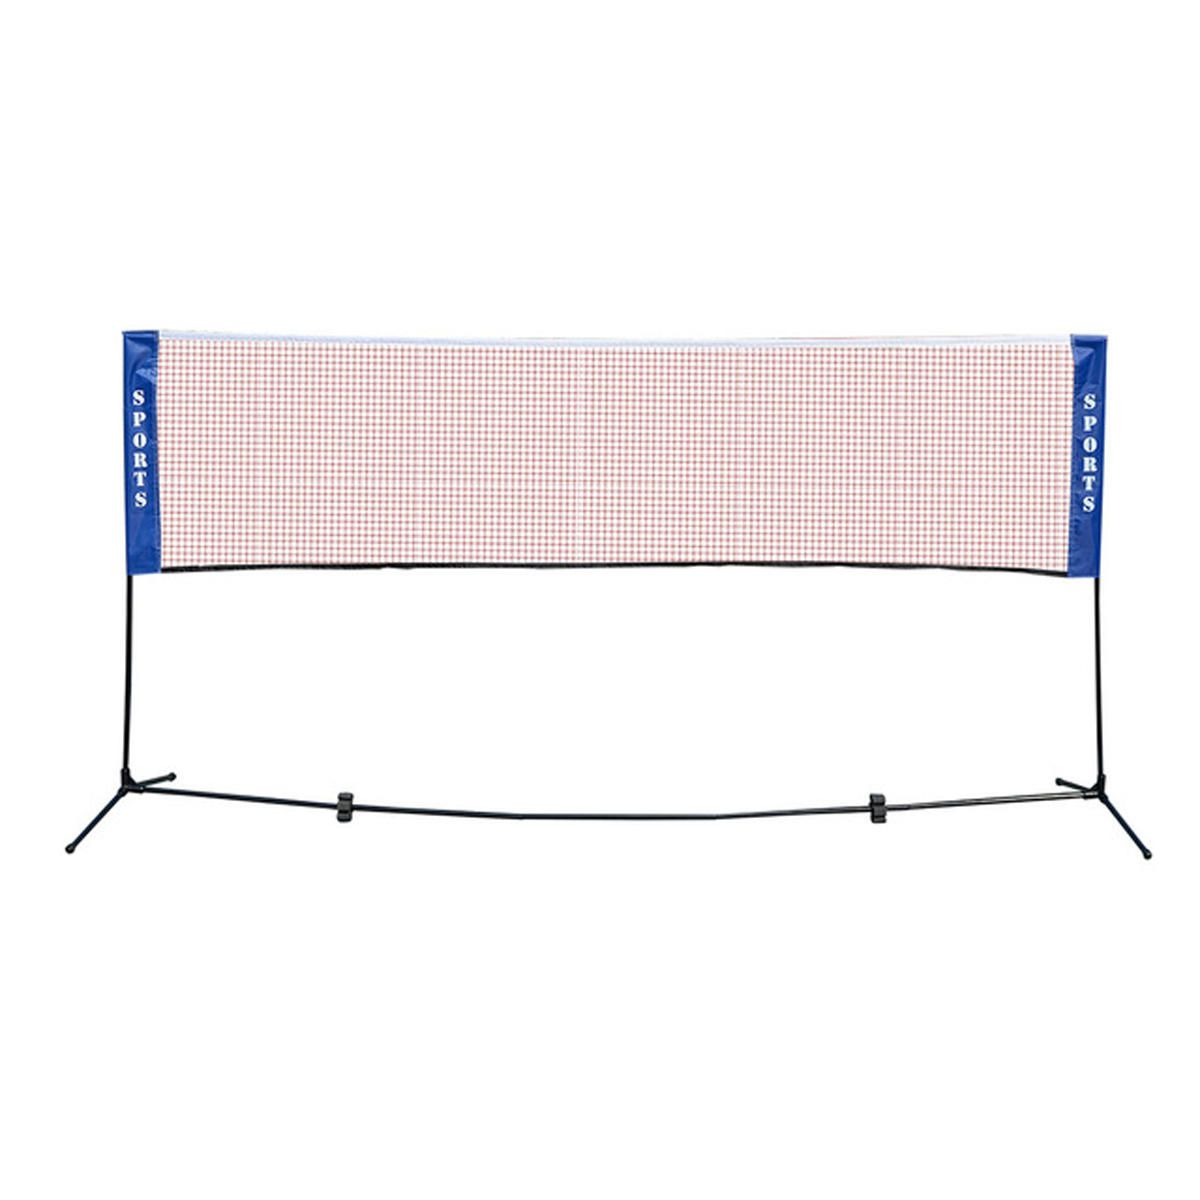 4 1m 5 1m Portable Sports Badminton Volleyball Tennis Net Set Foldable Frame Stand Team Sport From Sports Outdoor On Banggood Com Badminton Tennis Nets Volleyball